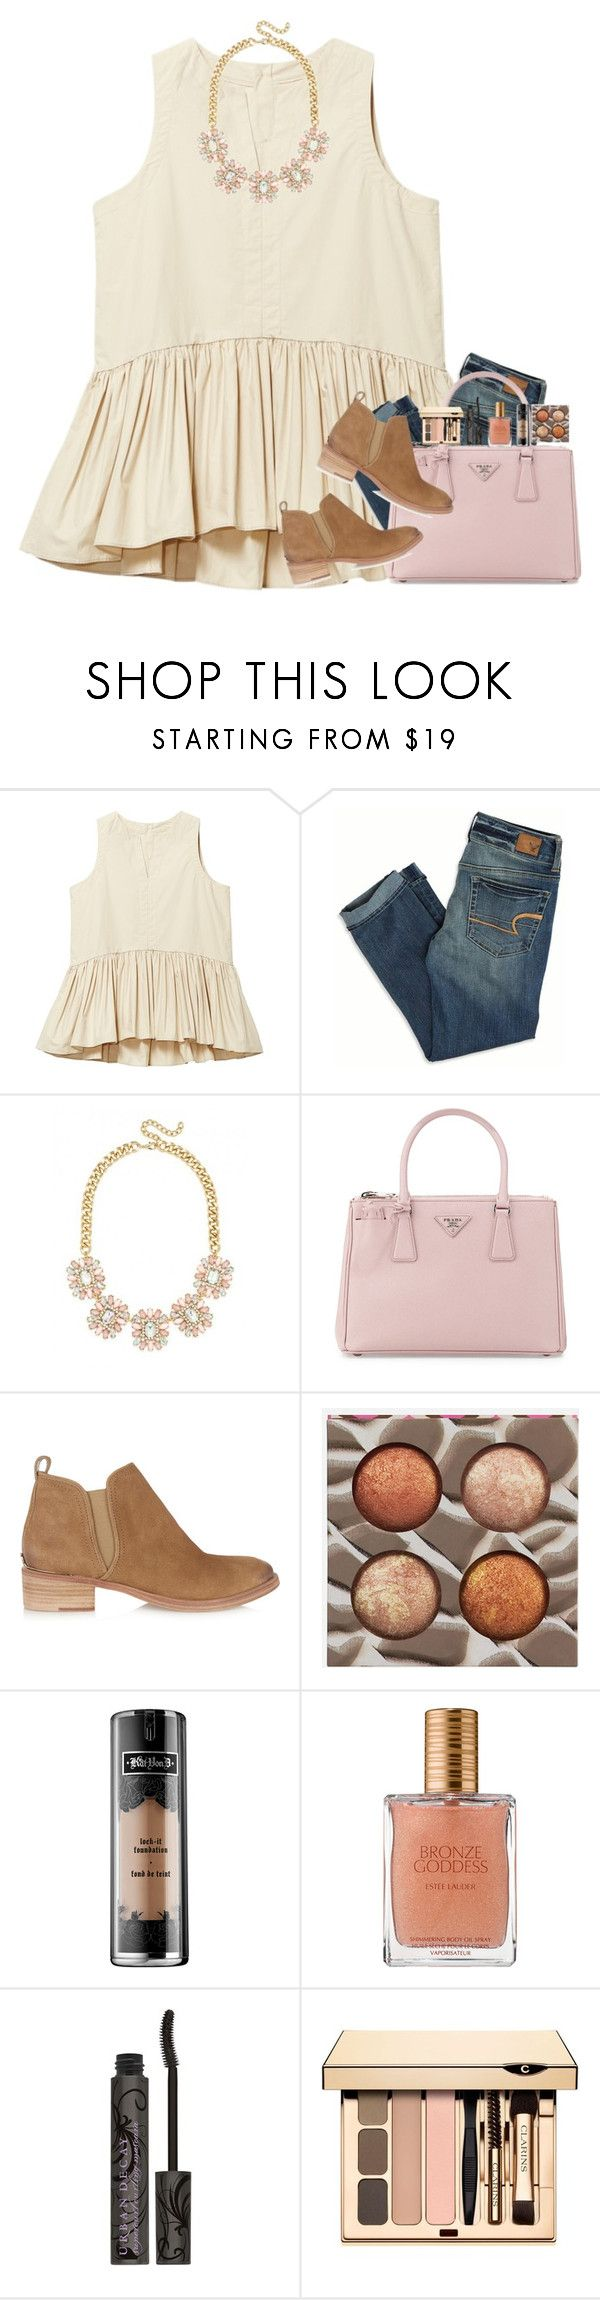 """giving me a million reasons"" by mehanahan ❤ liked on Polyvore featuring American Eagle Outfitters, Prada, Tory Burch, BHCosmetics, Kat Von D, Estée Lauder, Urban Decay and Clarins"